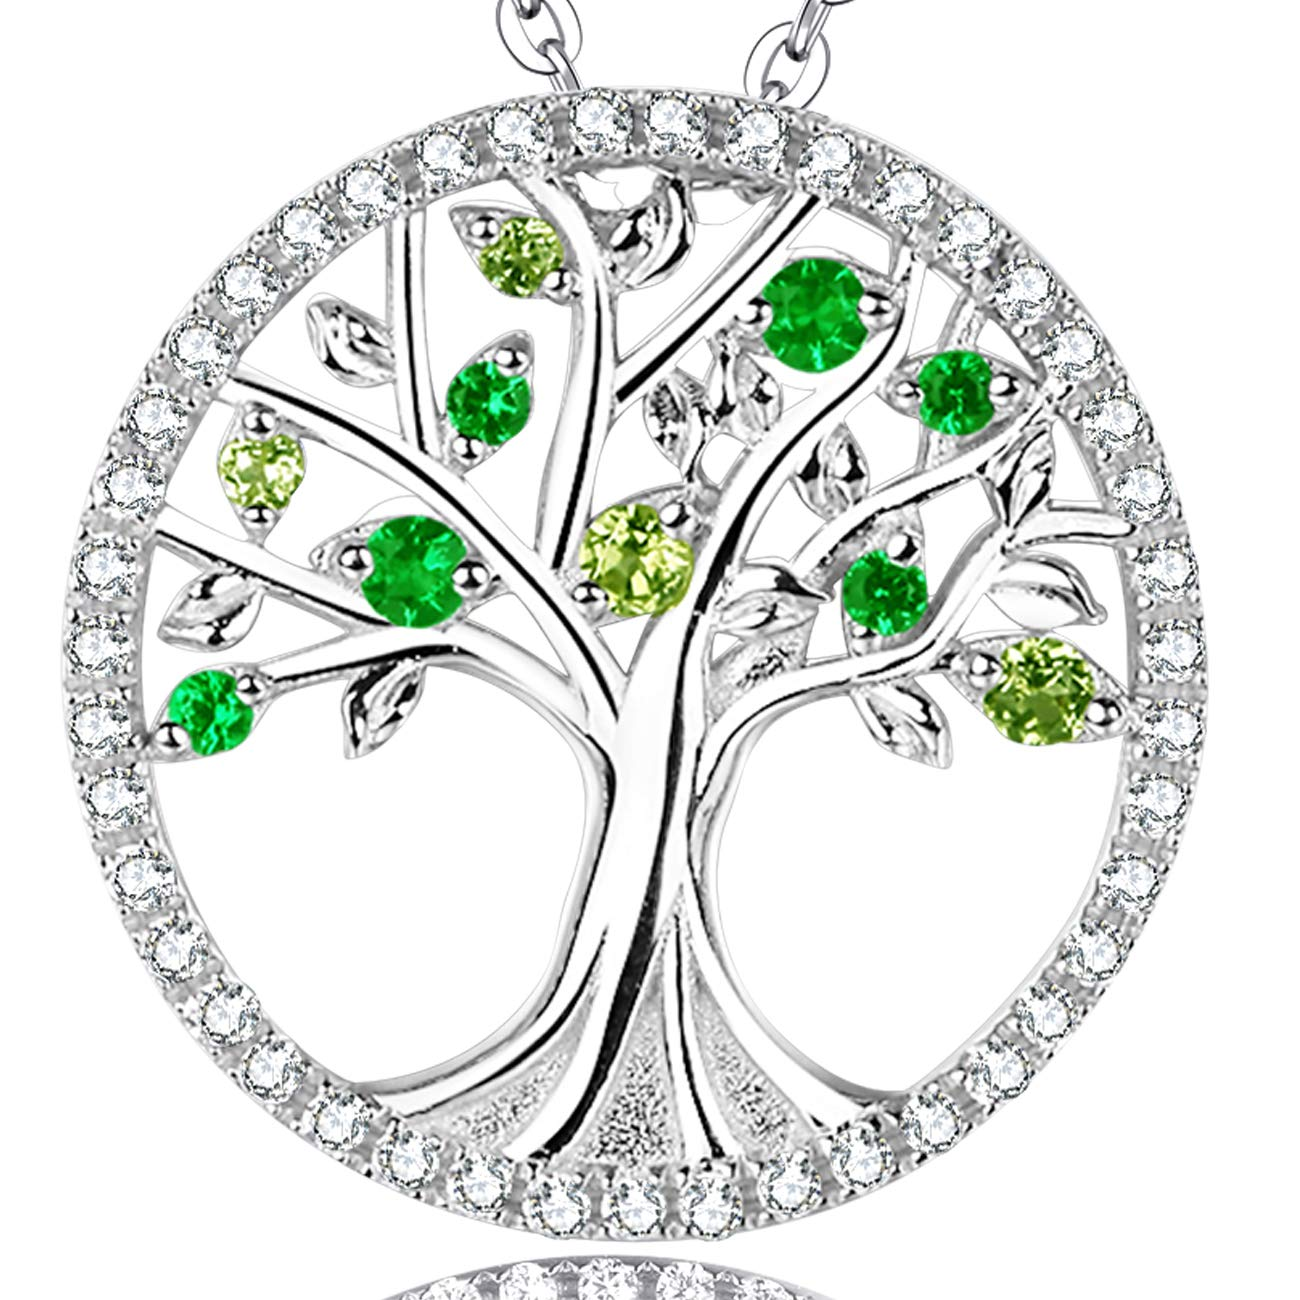 Birthday Gift Jewelry The Tree of Life Emerald & Peridot Pendant Necklace Sterling Silver Elda&Co P712